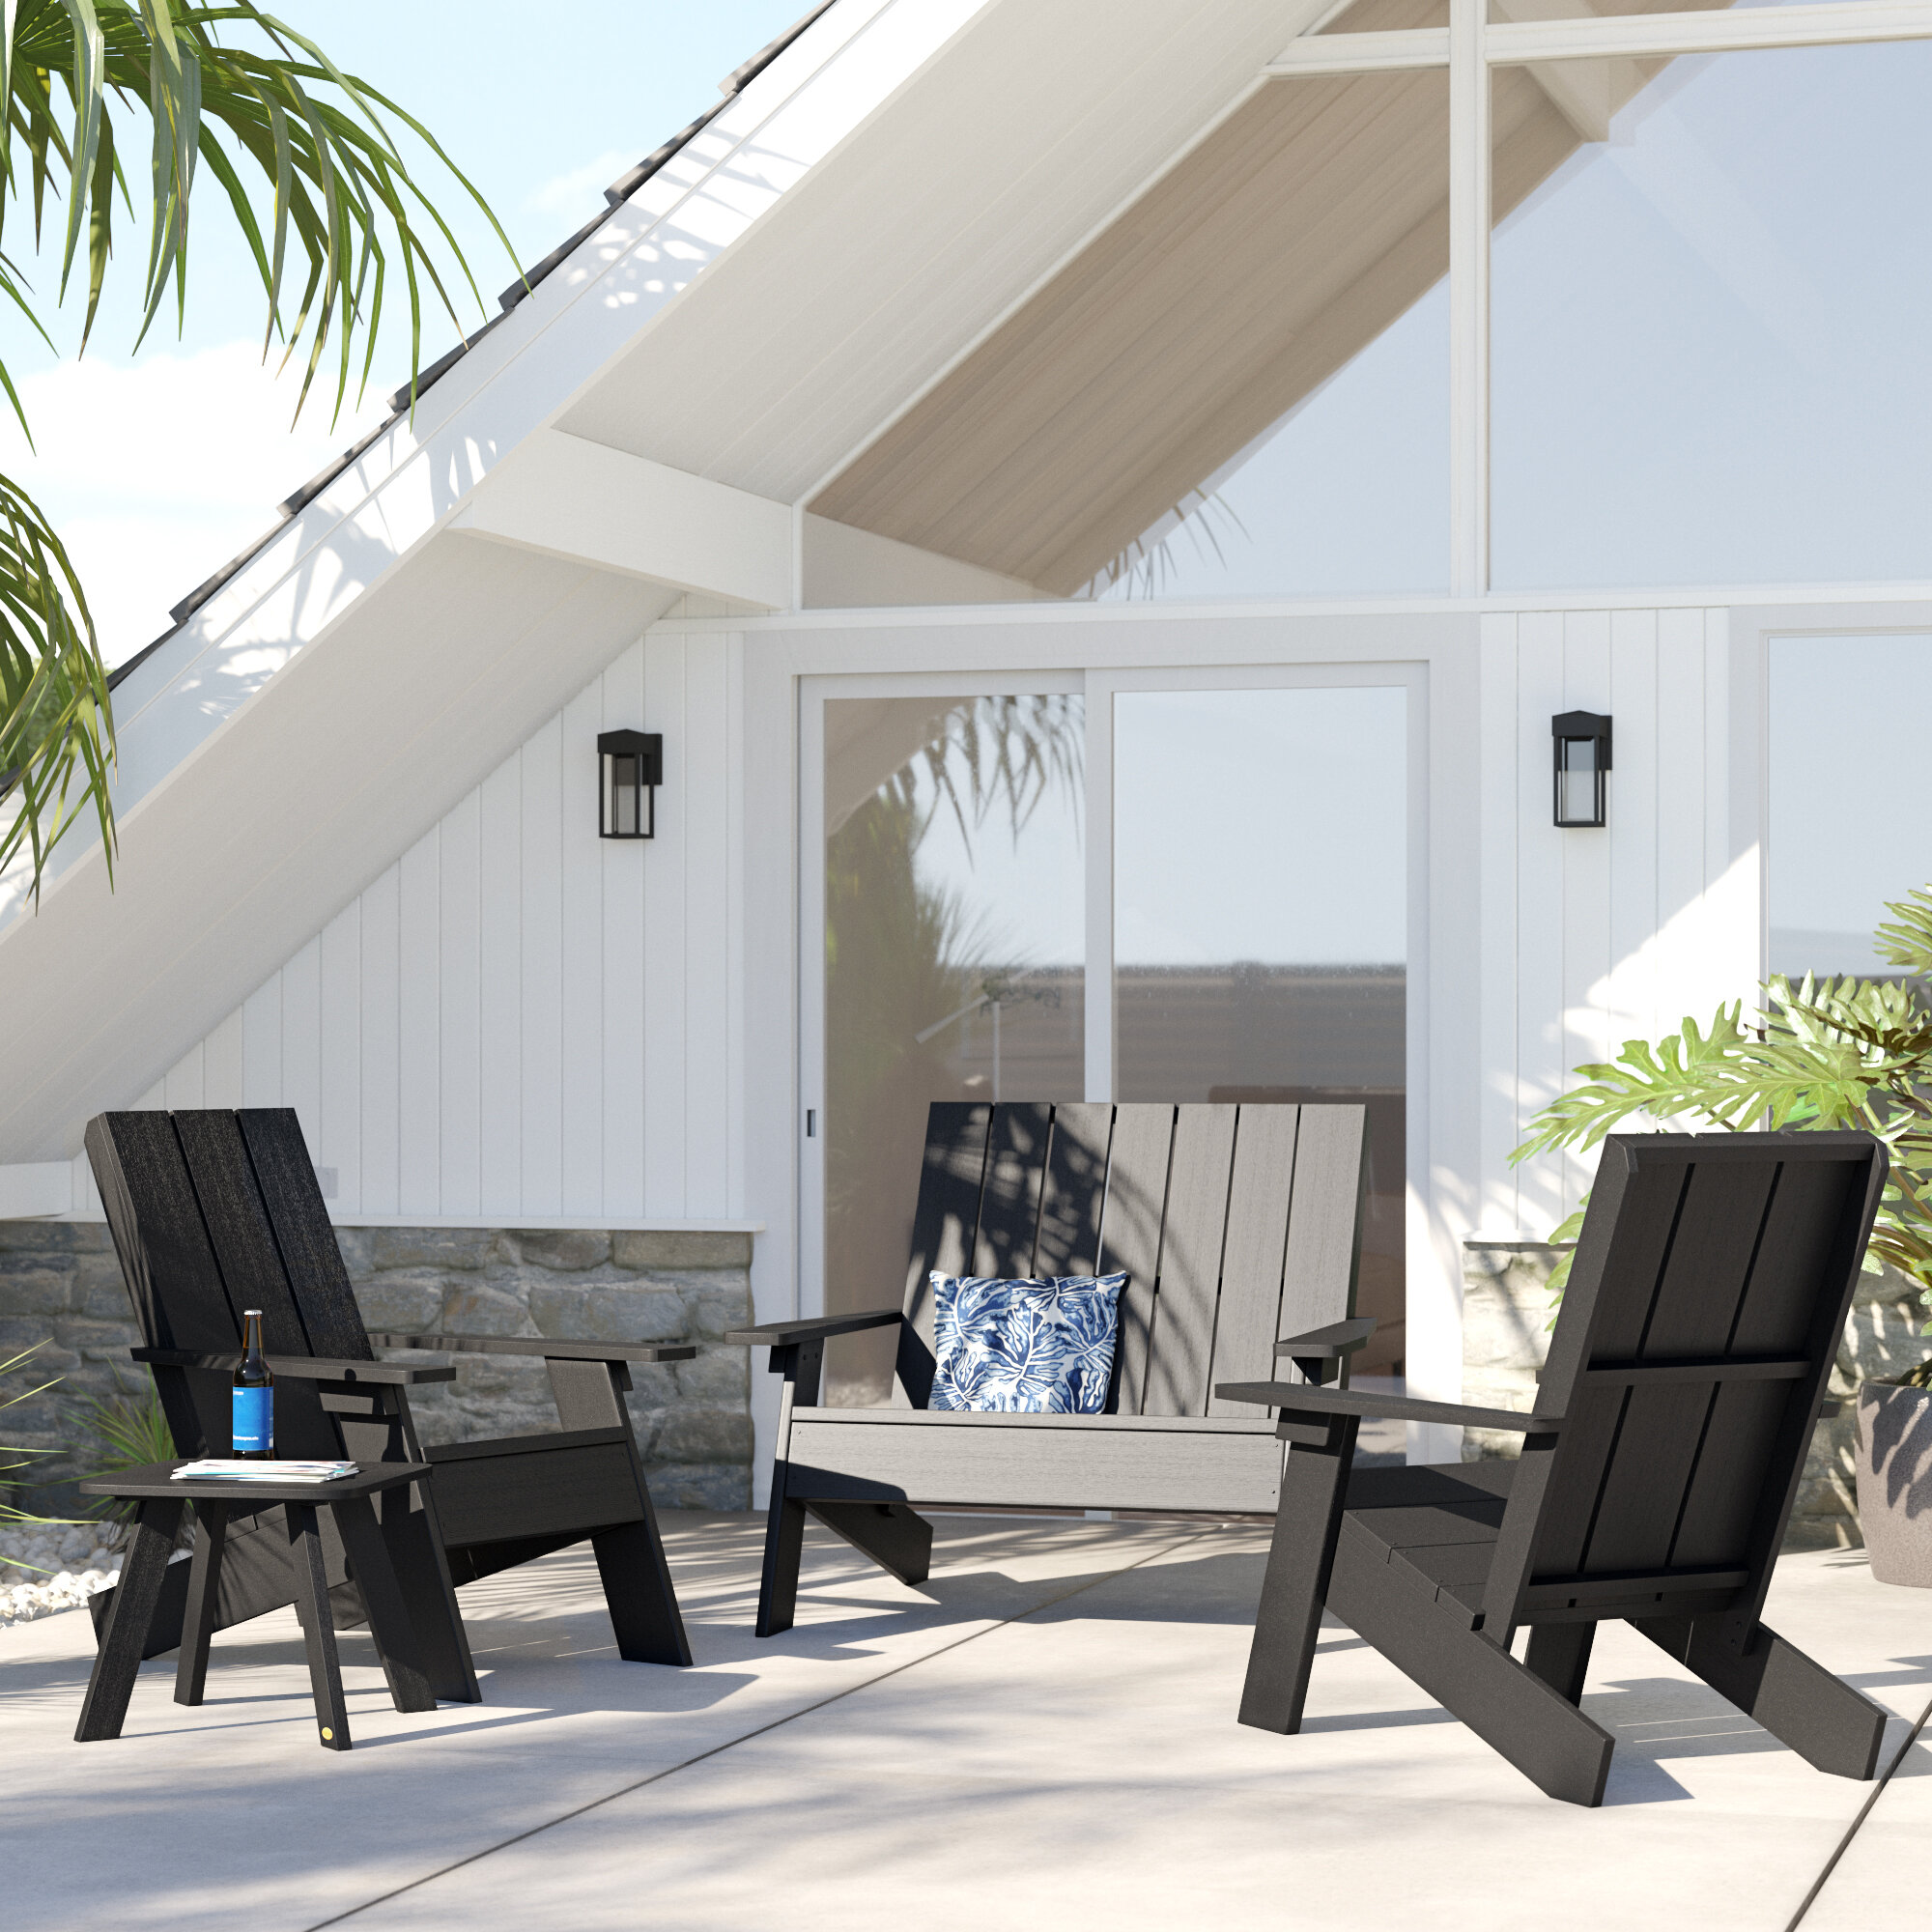 Picture of: Braintree Adirondack Chair With Table Reviews Allmodern